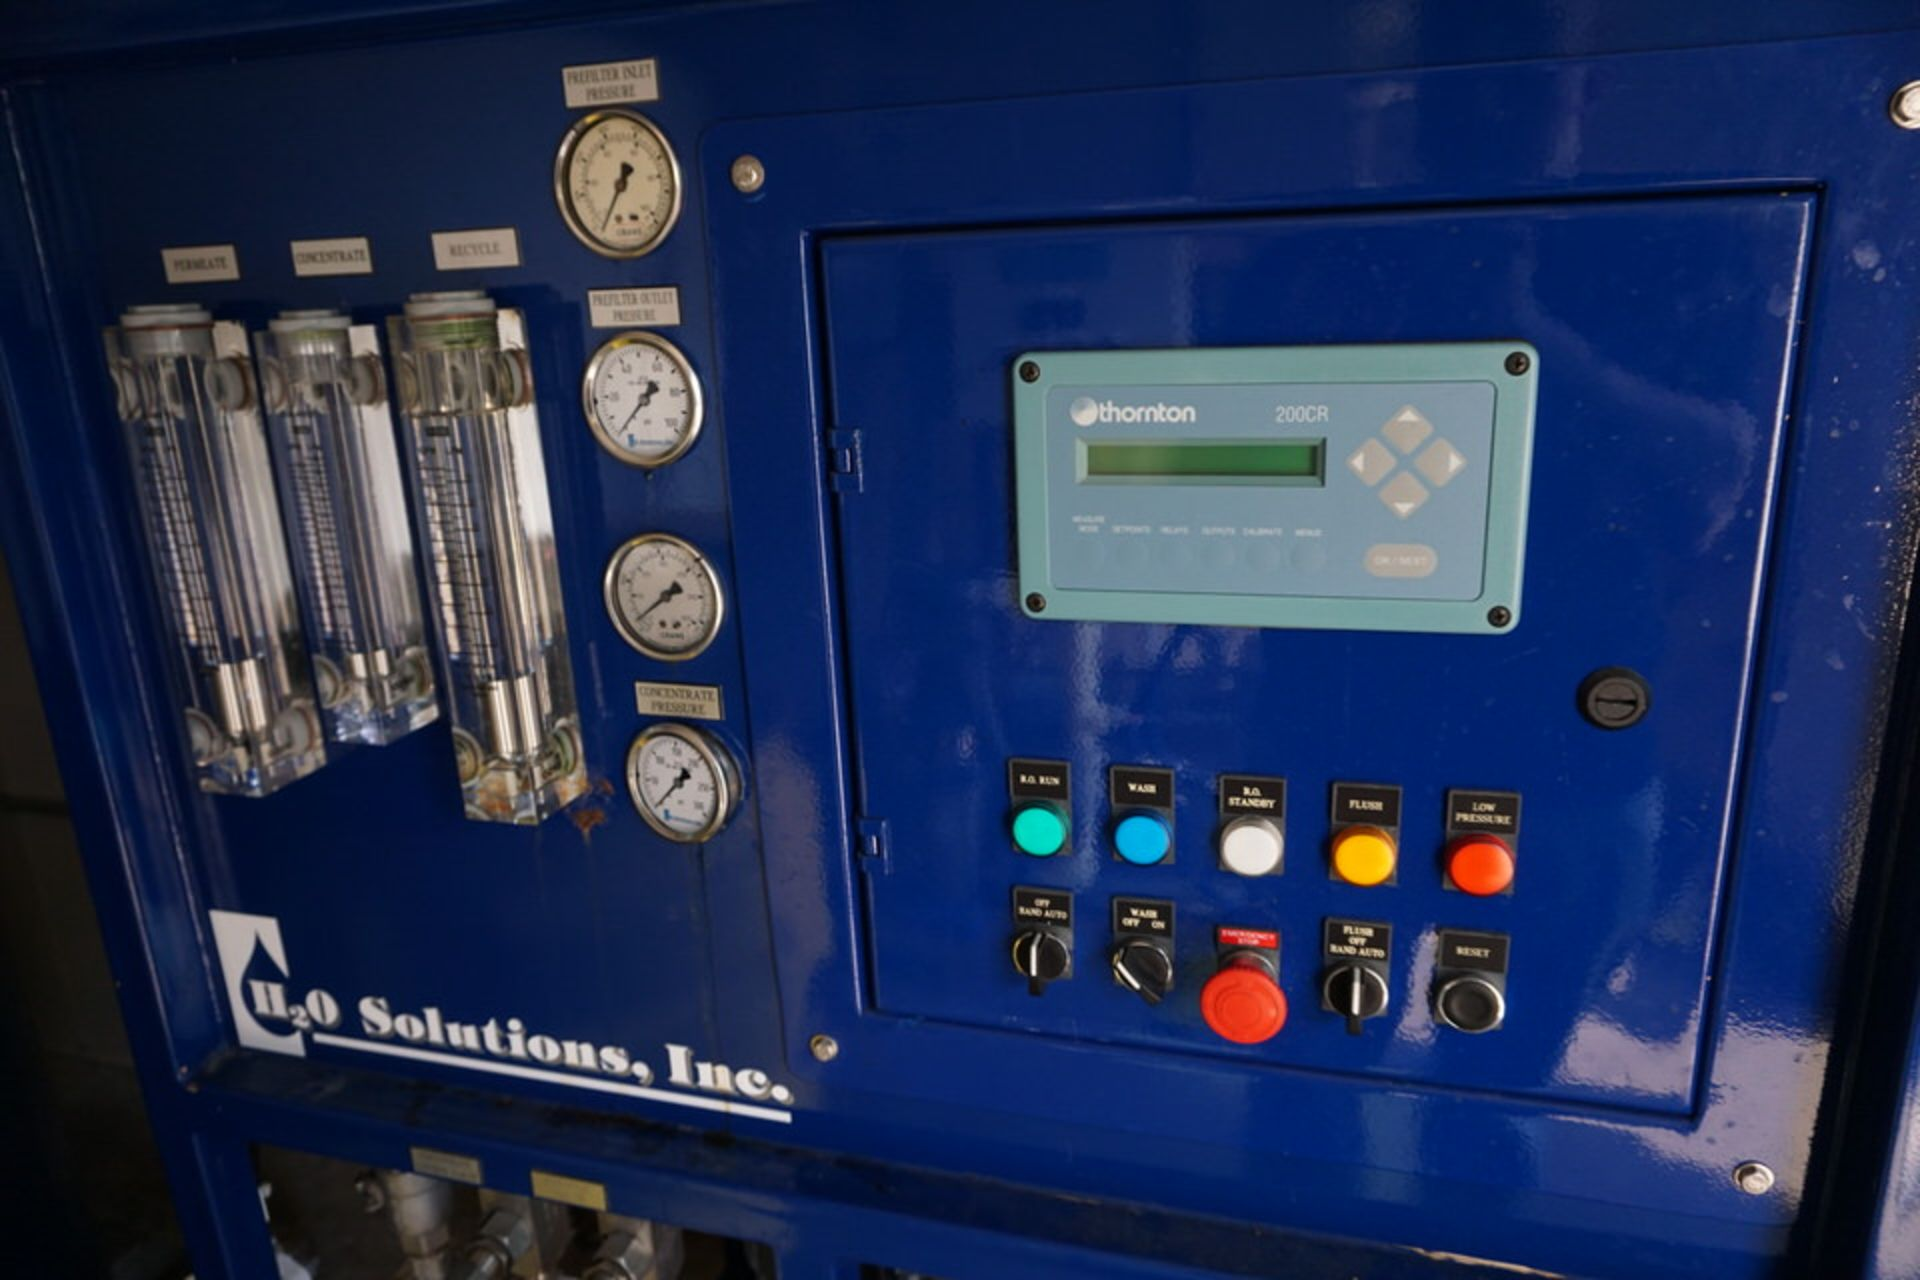 H20 SOLUTIONS INC DI WATER PLANT W/ THORNTON 200CR CONTROL - Image 11 of 12